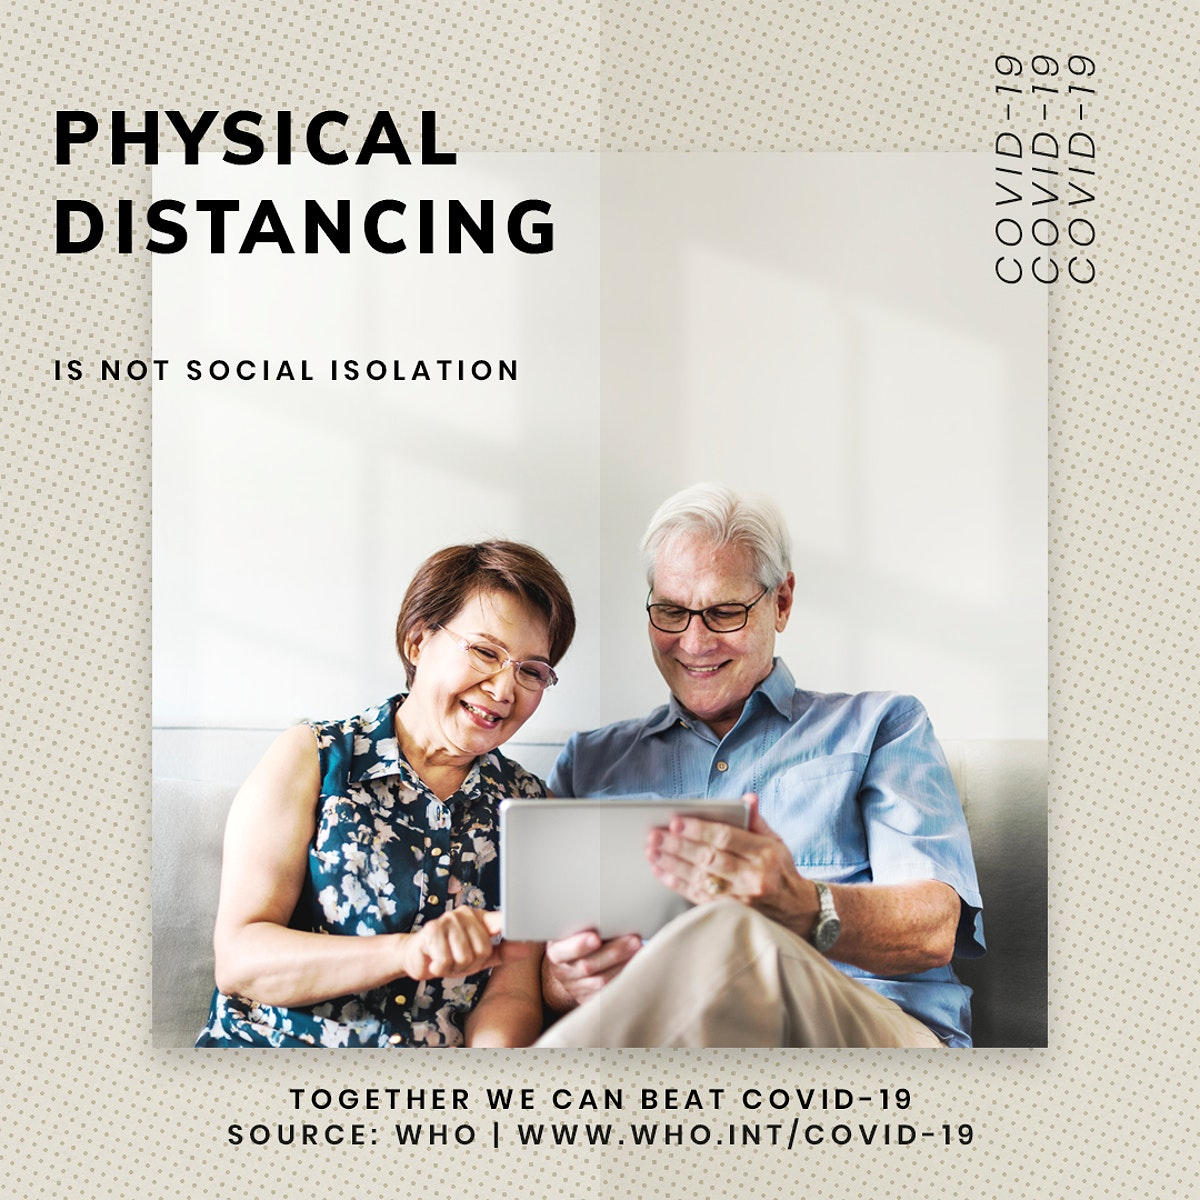 Physical distancing during coronavirus outbreak social template source WHO vector